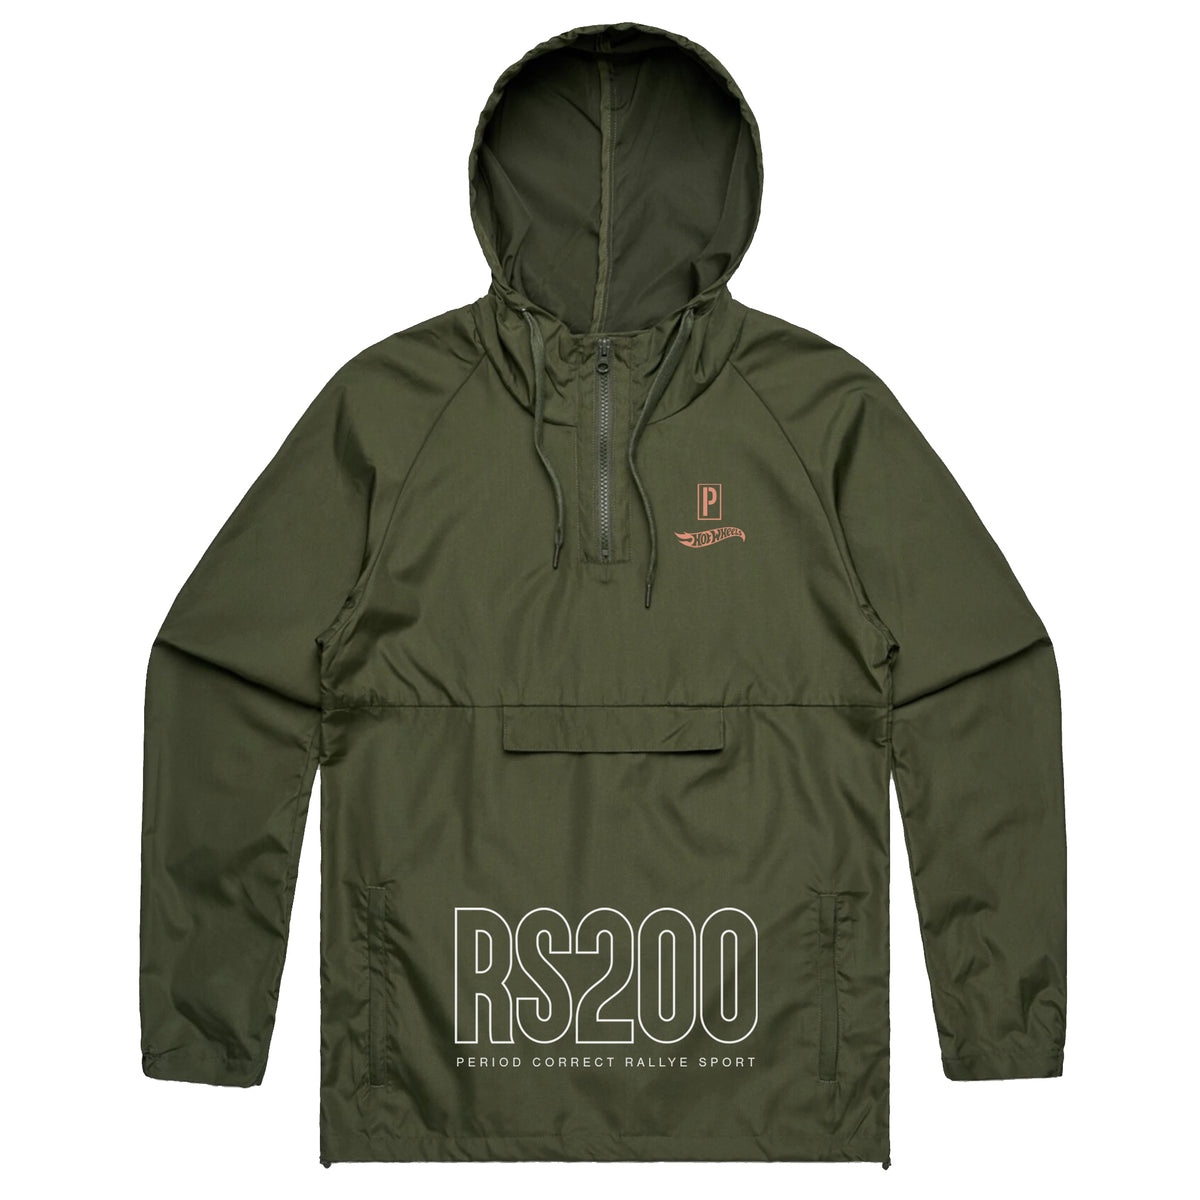 RS200 WINDBREAKER JACKET